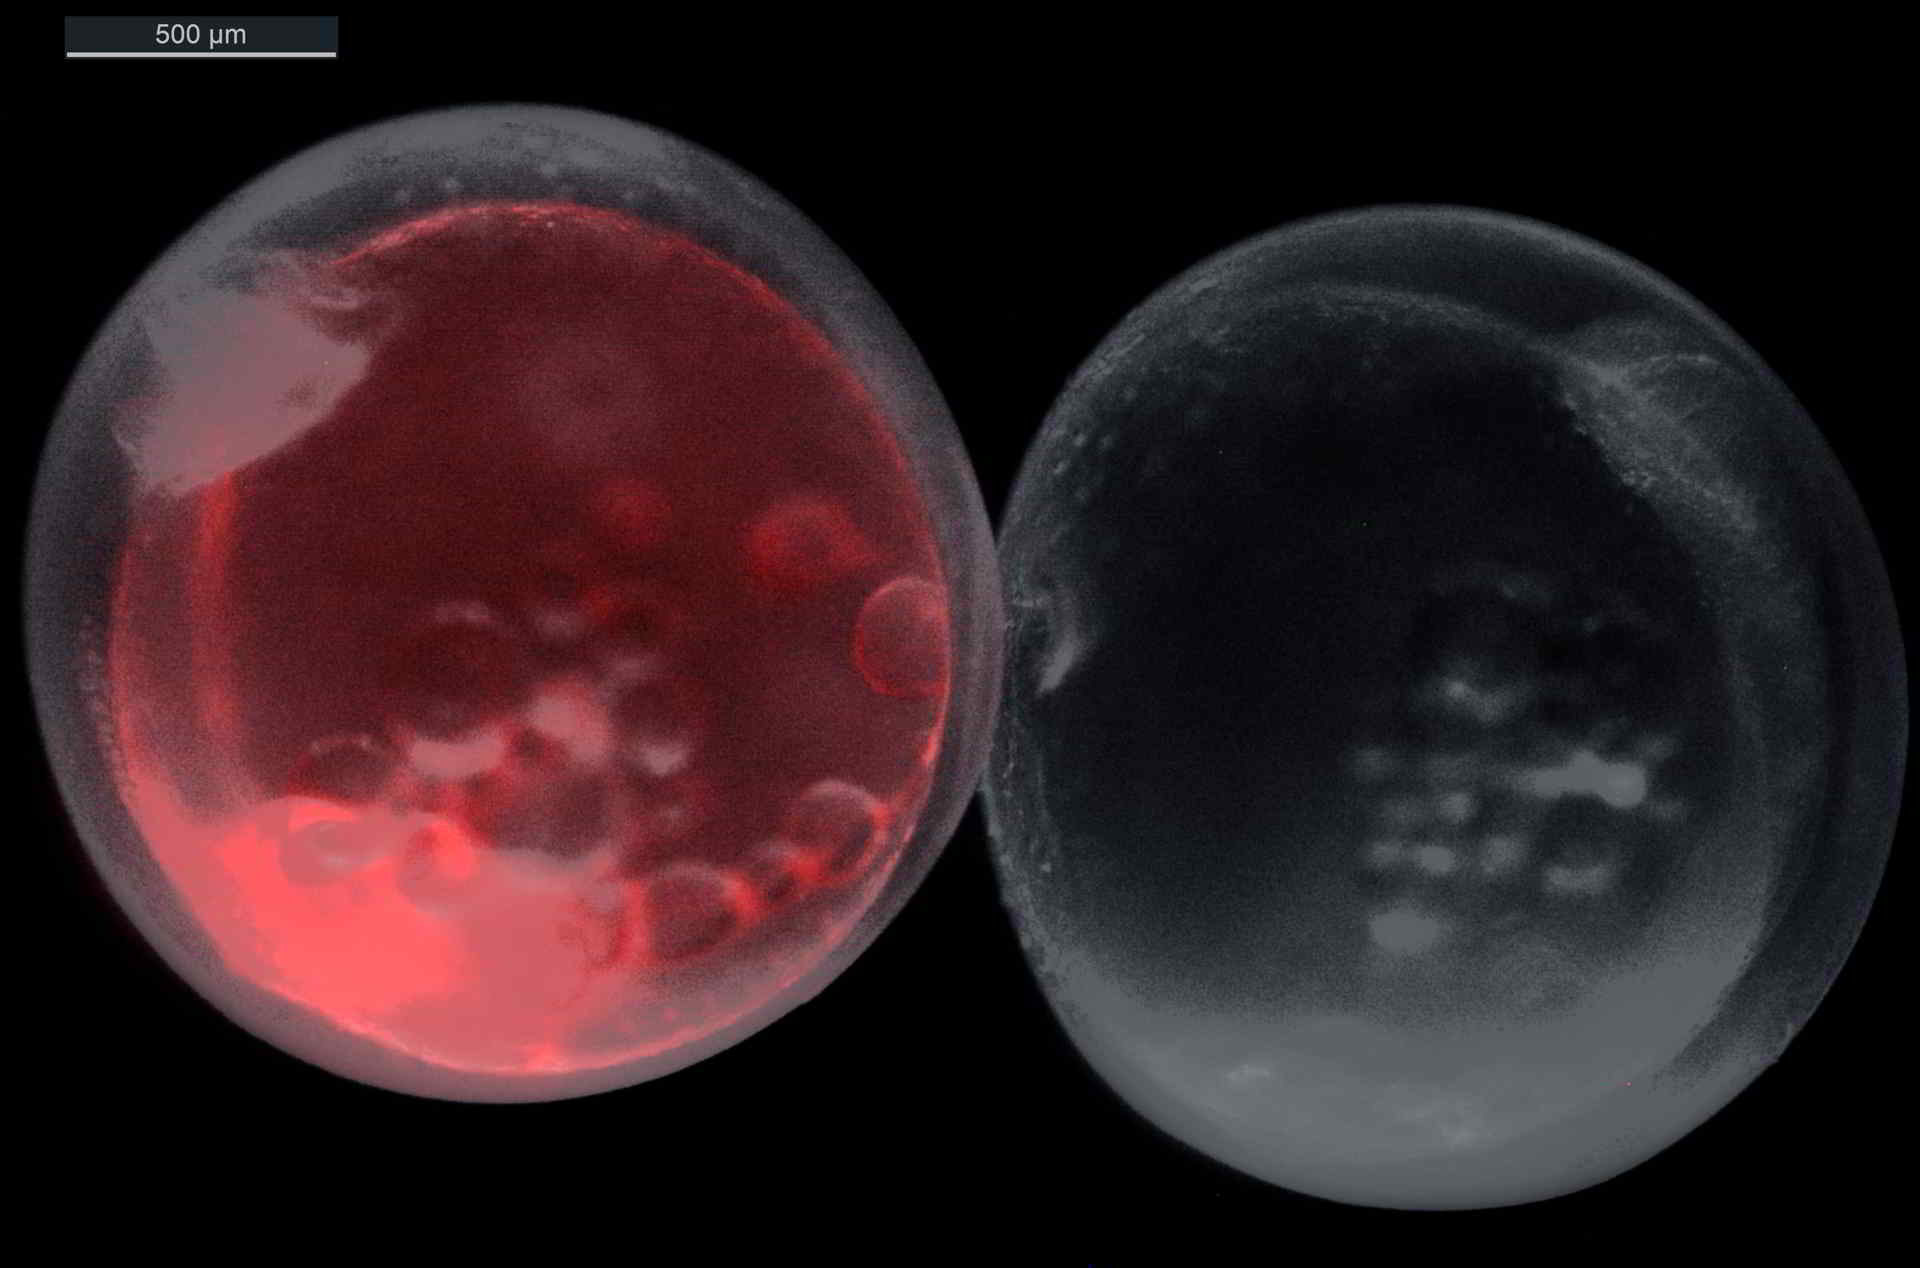 Two stickleback eggs - the left egg is transgenic and glows red under UV light while its sibling is unaffected.